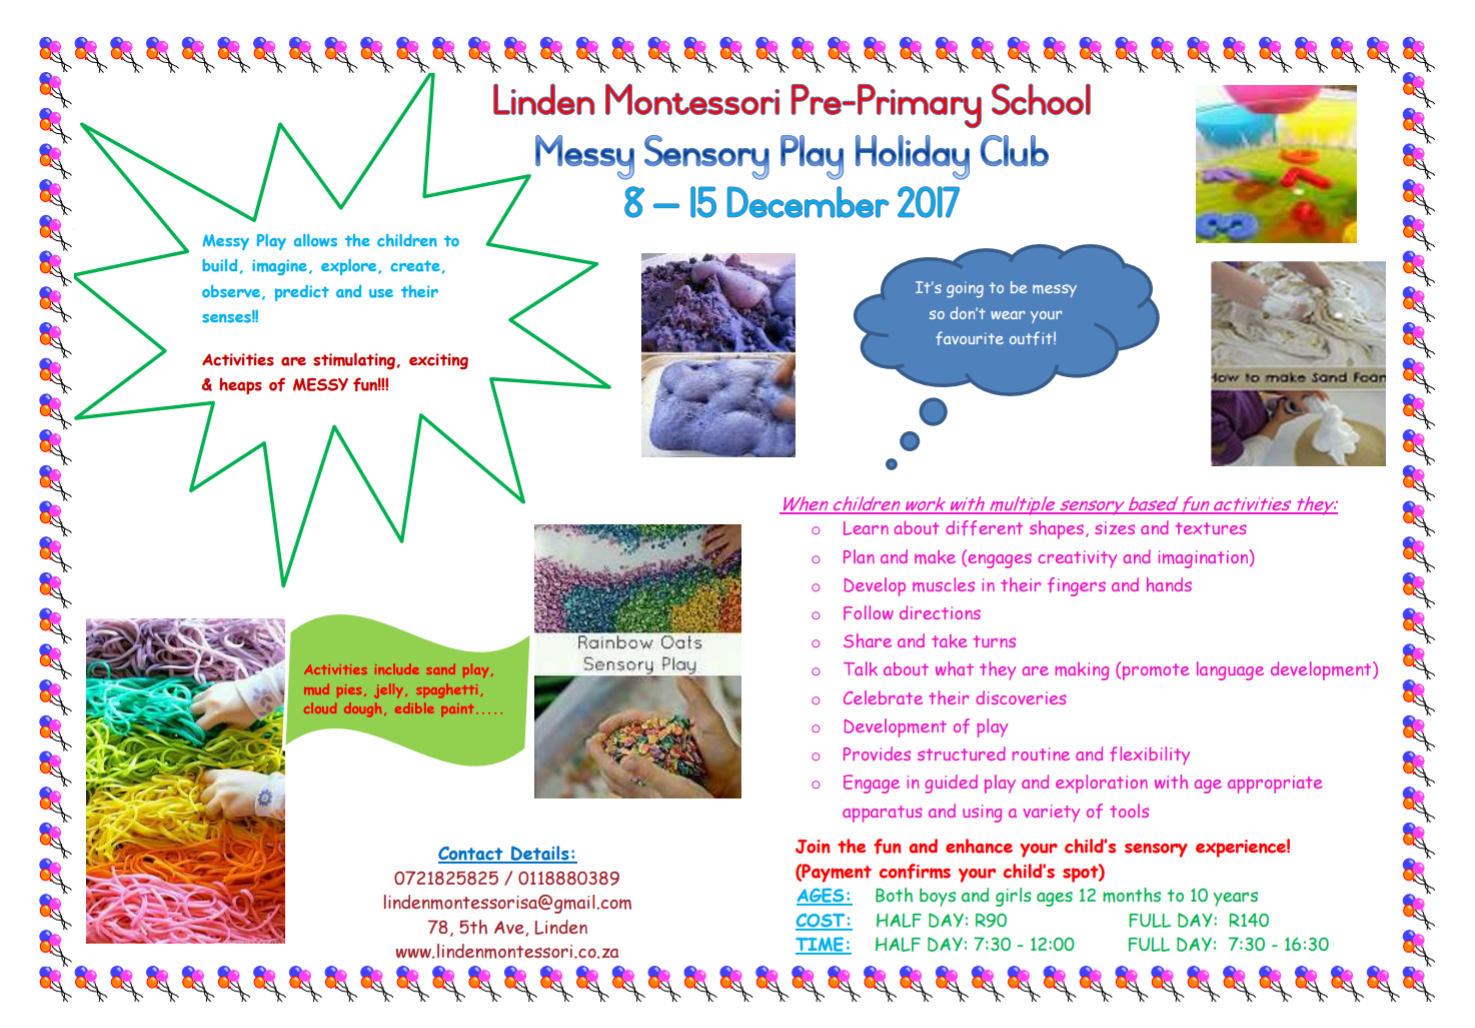 Messy Sensory Play Holiday Programme